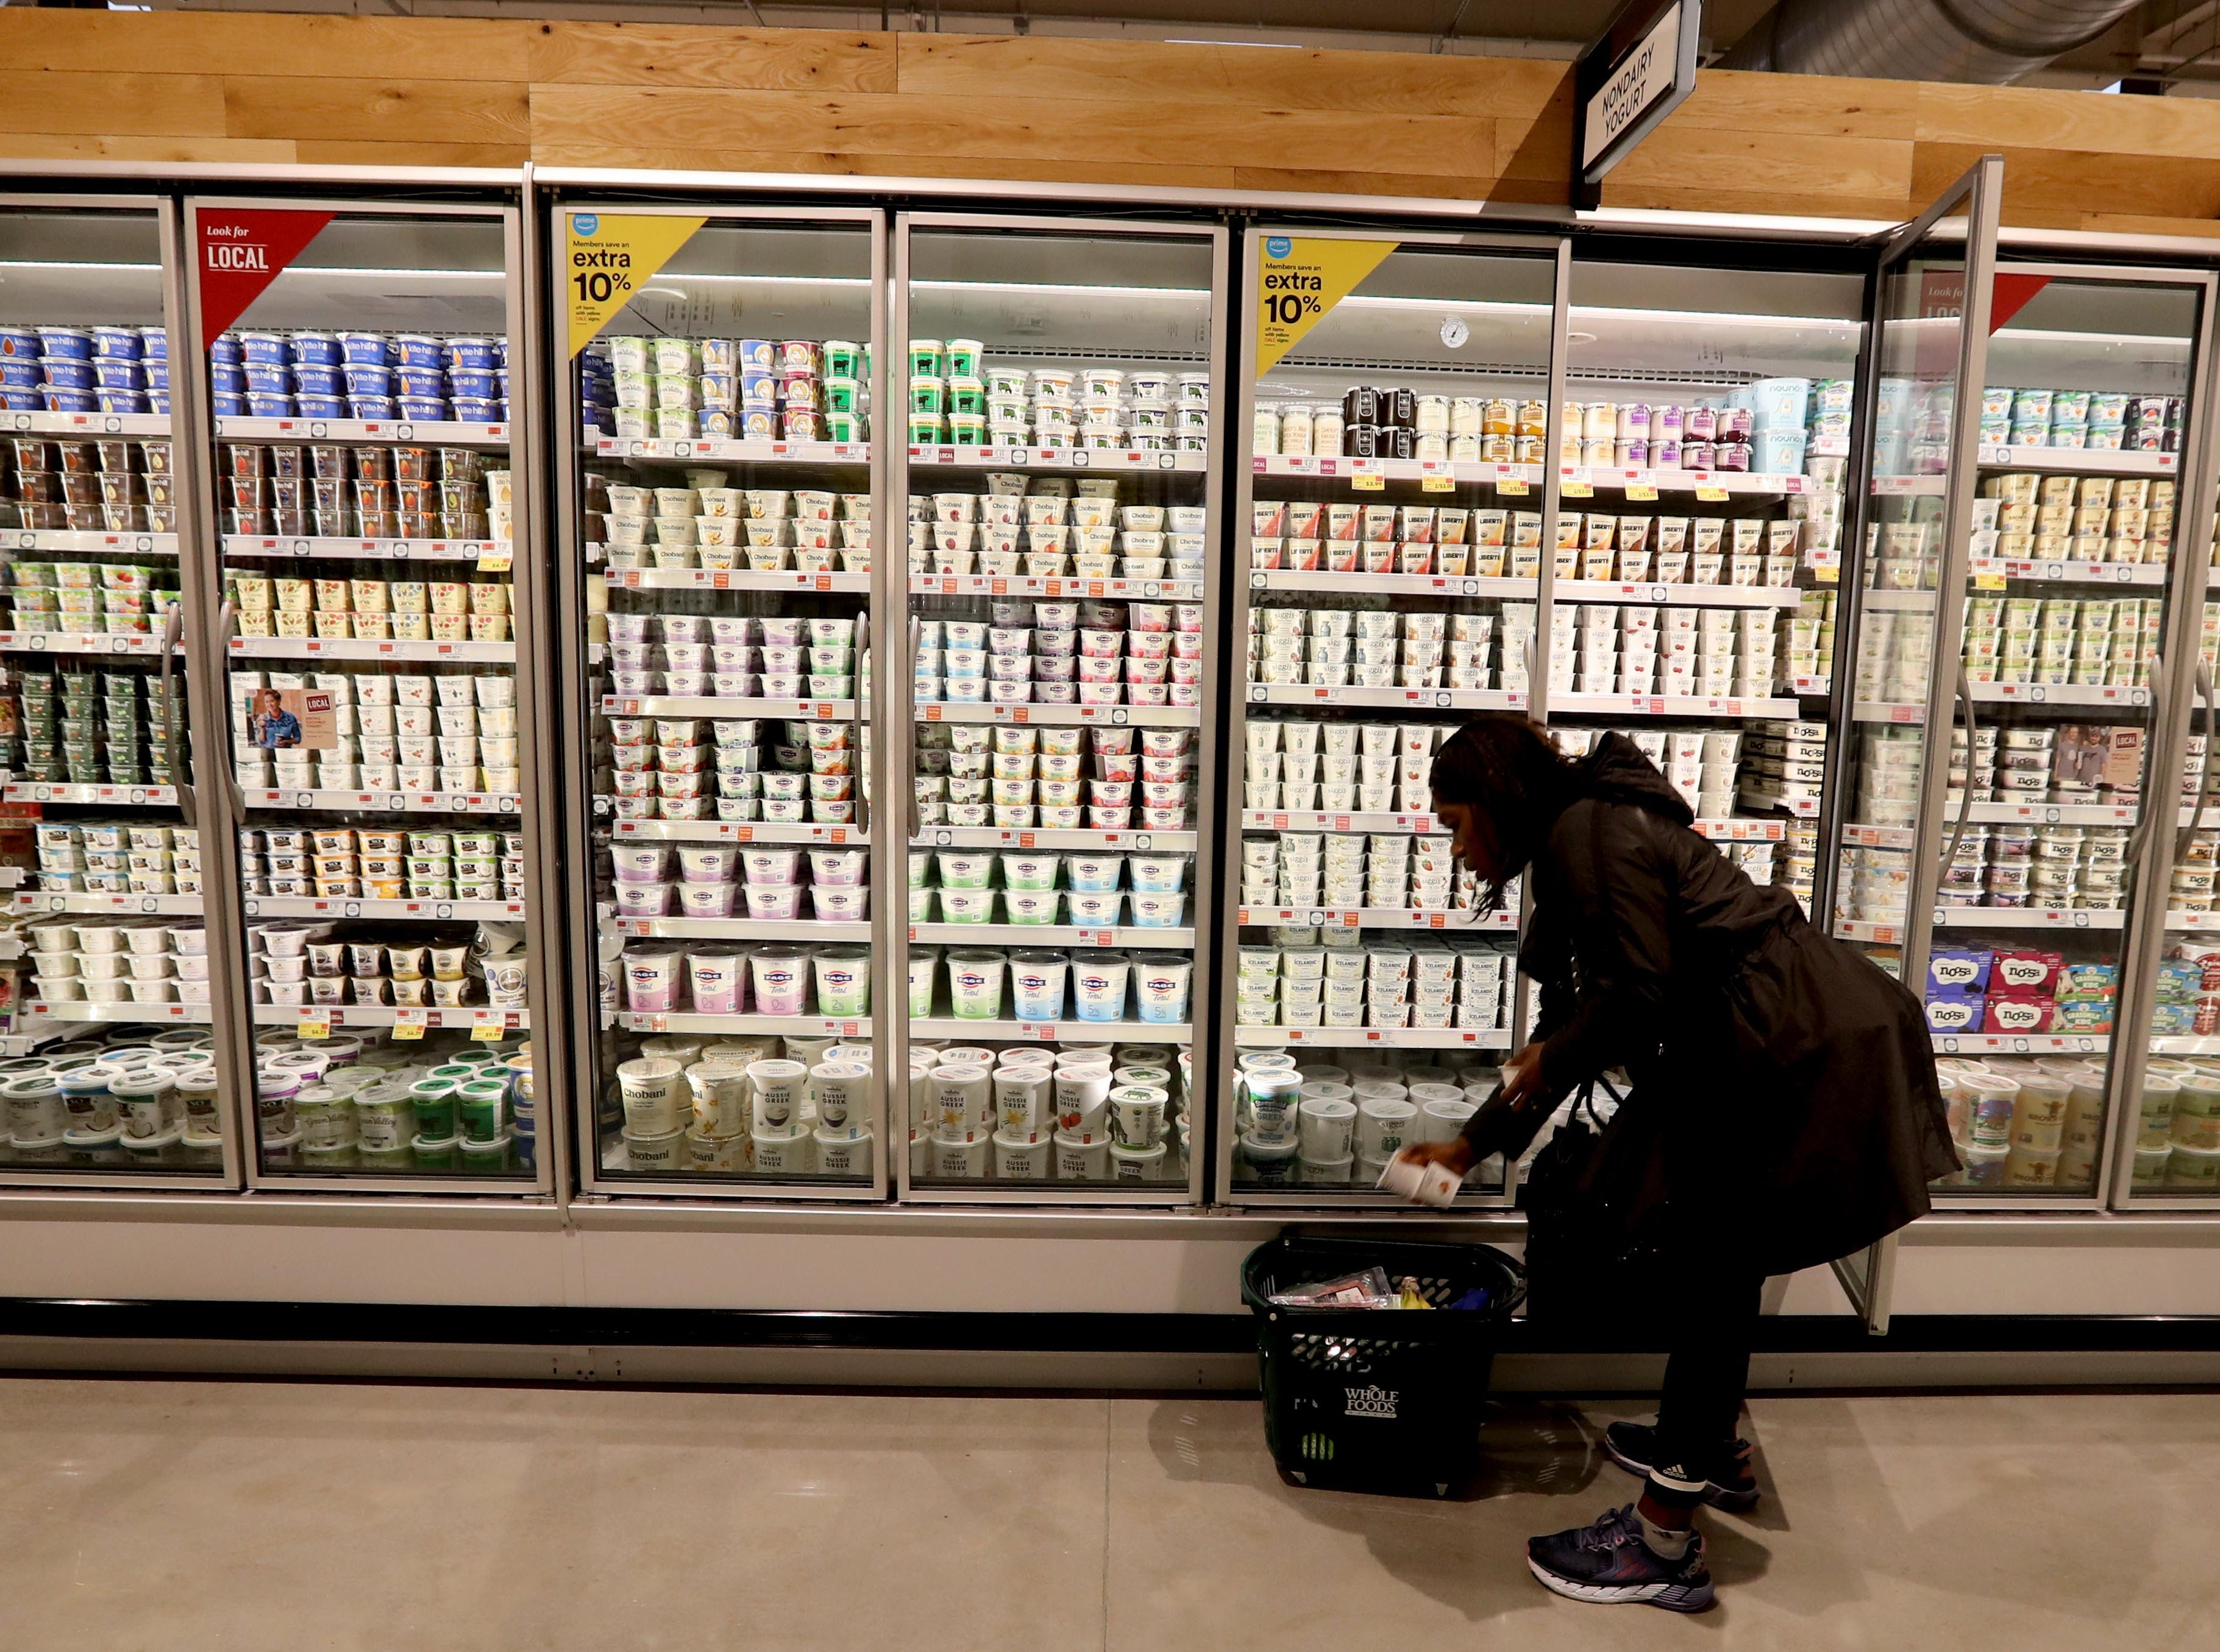 Ngozi Okezie of Chappaqua shops in the produce section of the new Whole Foods in Chappaqua shortly after the grand opening of the supermarket at Chappaqua Crossing  Dec. 15, 2018. The 40,000 square foot store opened to shoppers on the site of the formers Readers Digest headquarters. The New Castle Town Board and Planning Board approved a temporary traffic plan for the Route 117-Roaring Brook Road intersection that allowed the store to open.